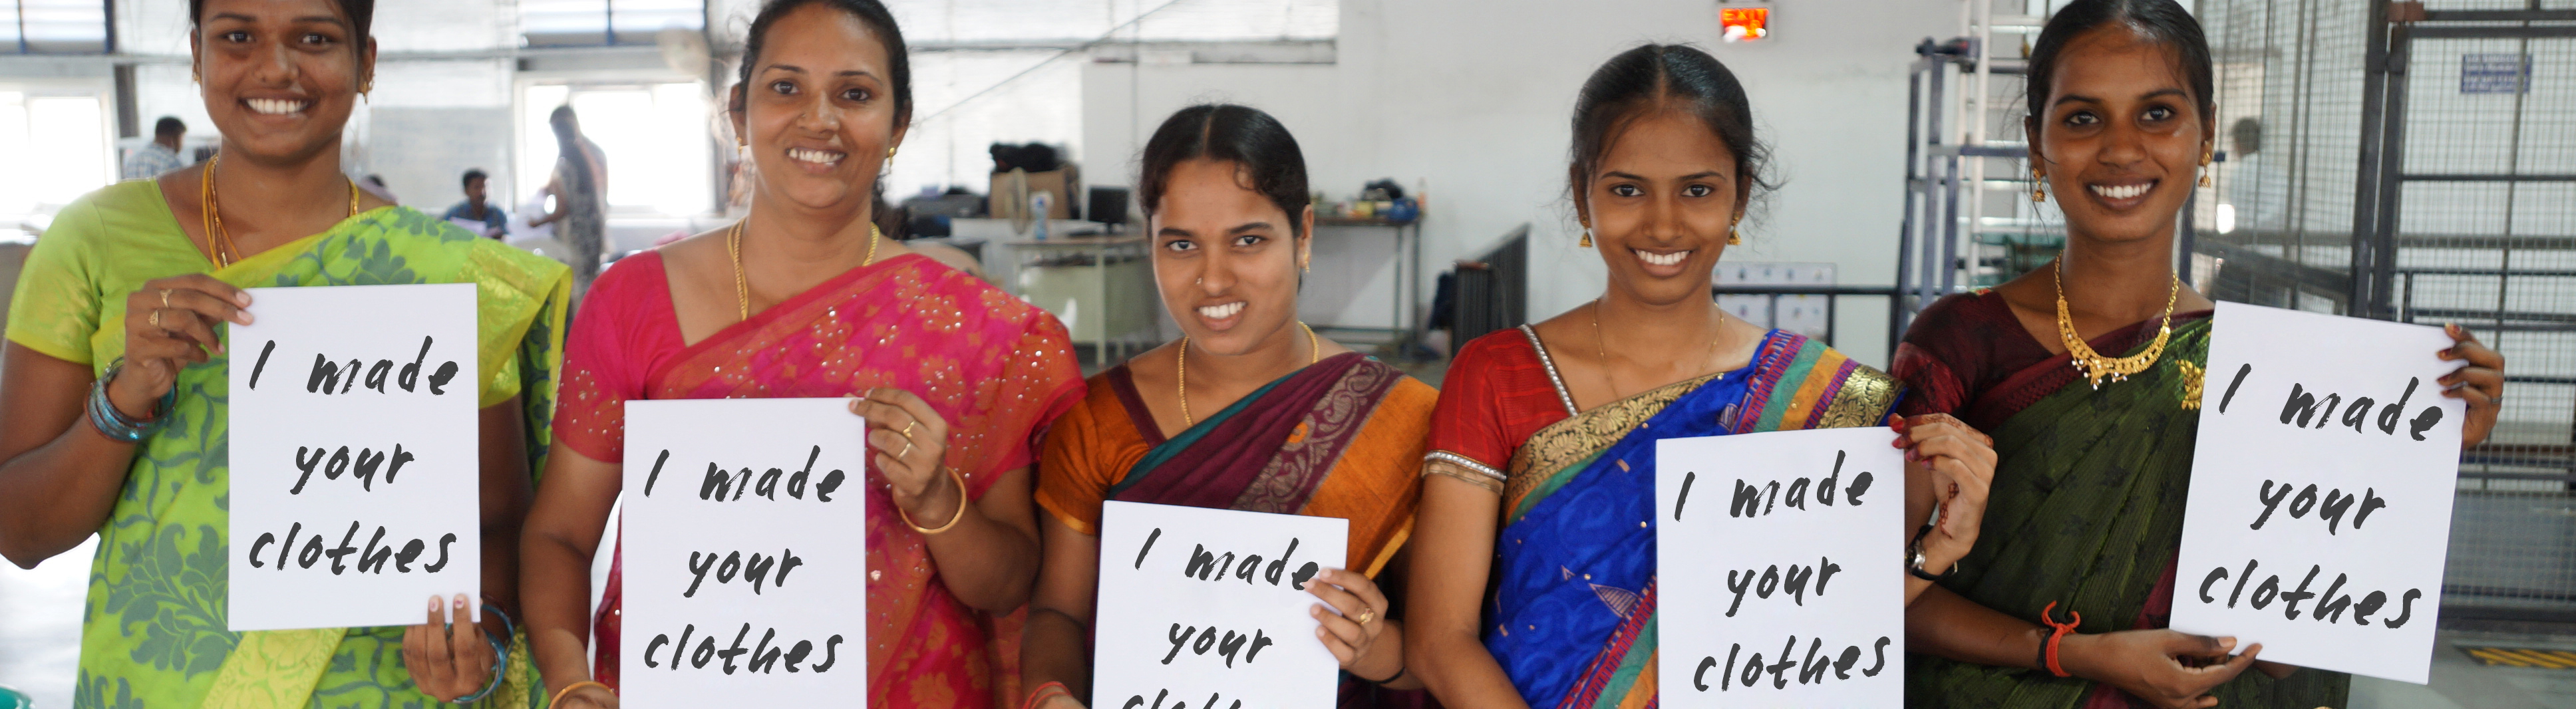 sustainable clothing manufacturers fair trade clothing manufacturers